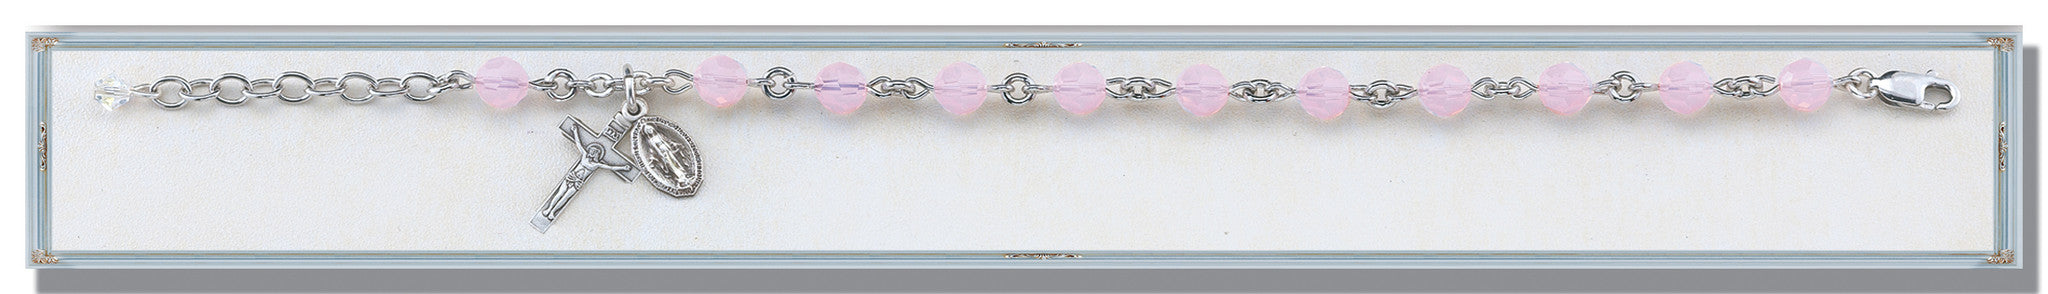 rose_opal_crystal_sterling_bracelet